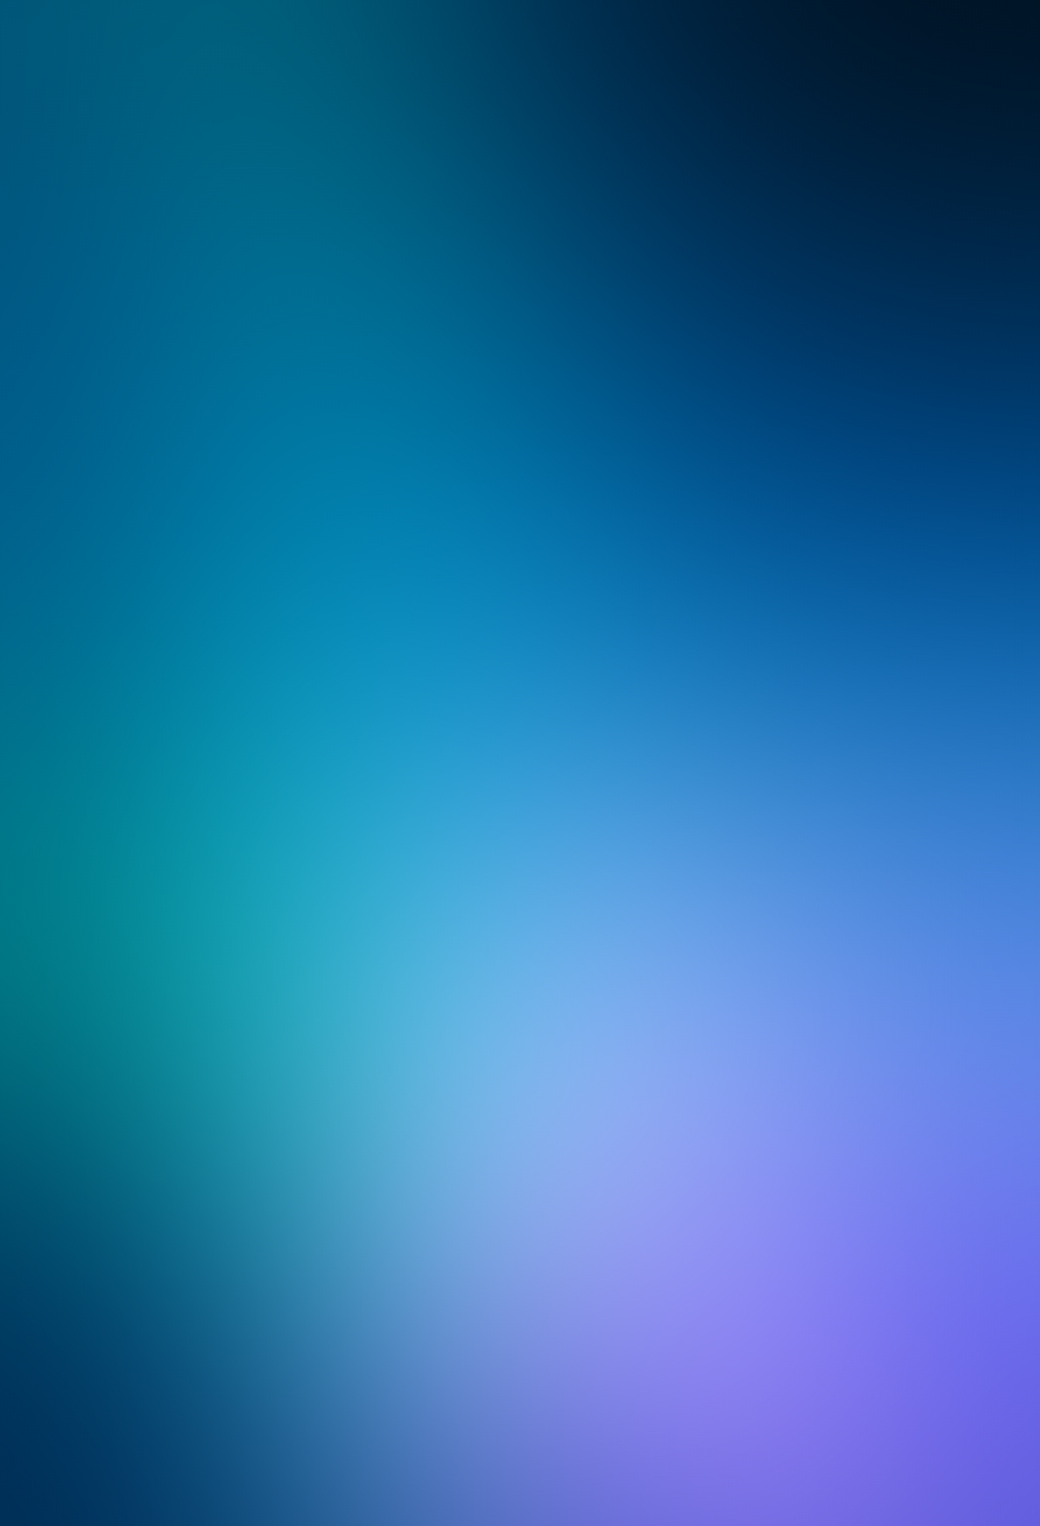 50 Iphone 7 Wallpaper On Wallpapersafari